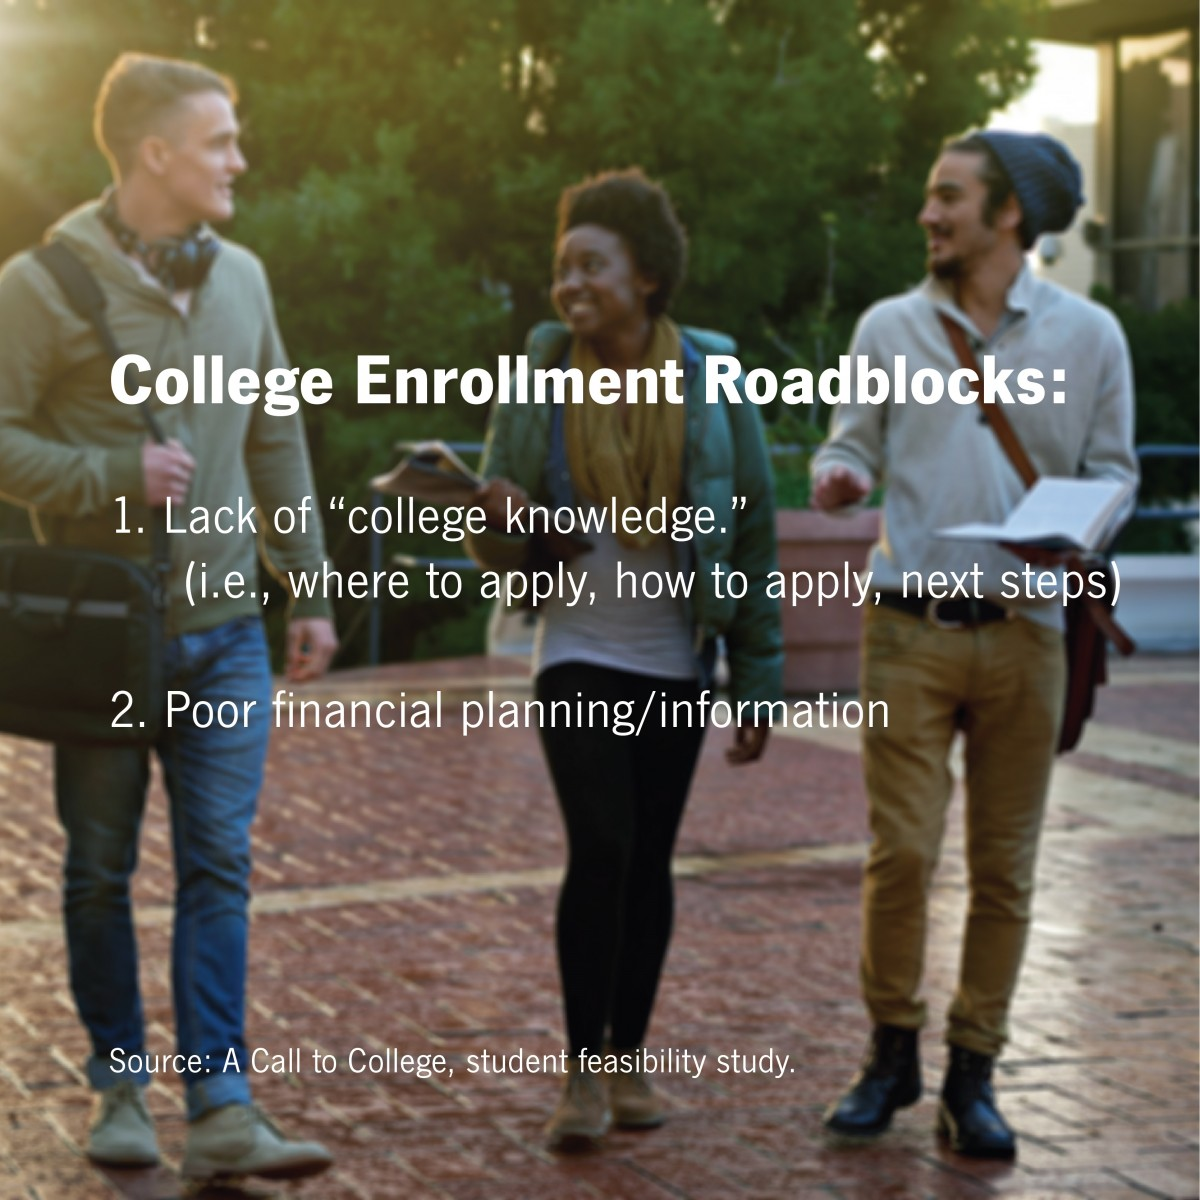 College Enrollment Roadblocks